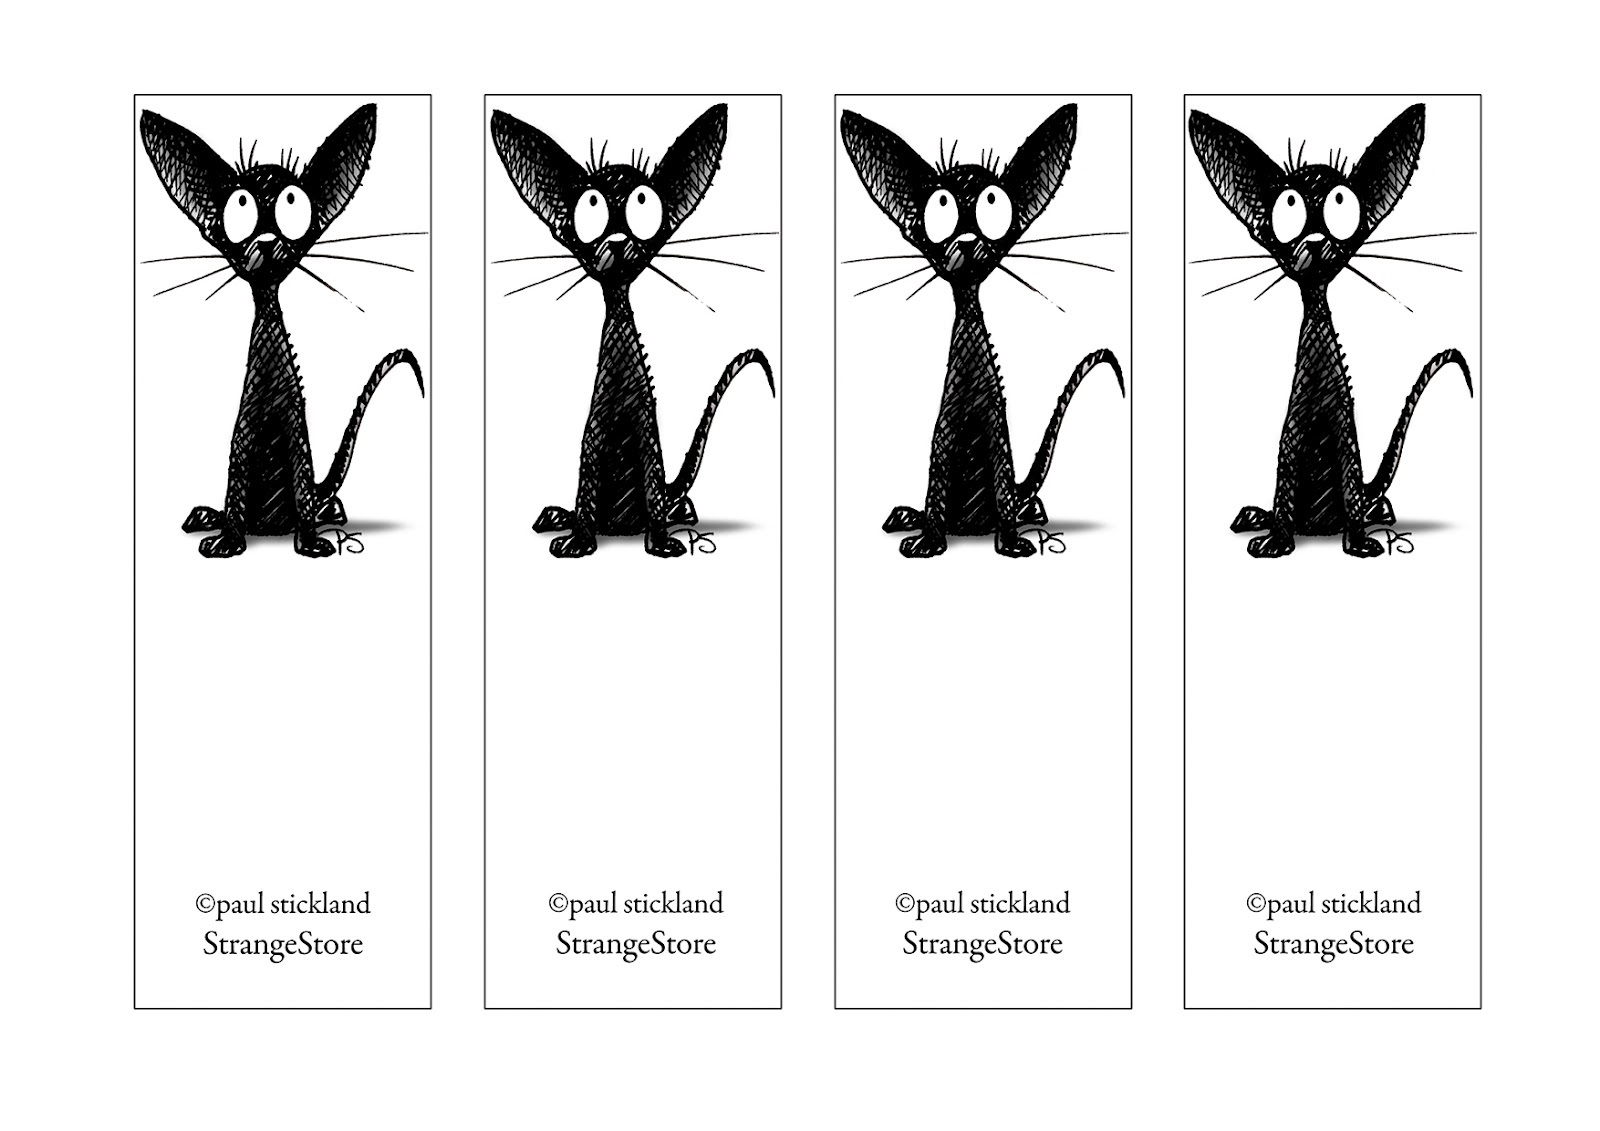 photograph regarding Cute Printable Bookmarks called Cost-free Printable Looking at Bookmarks Black and White Recreation